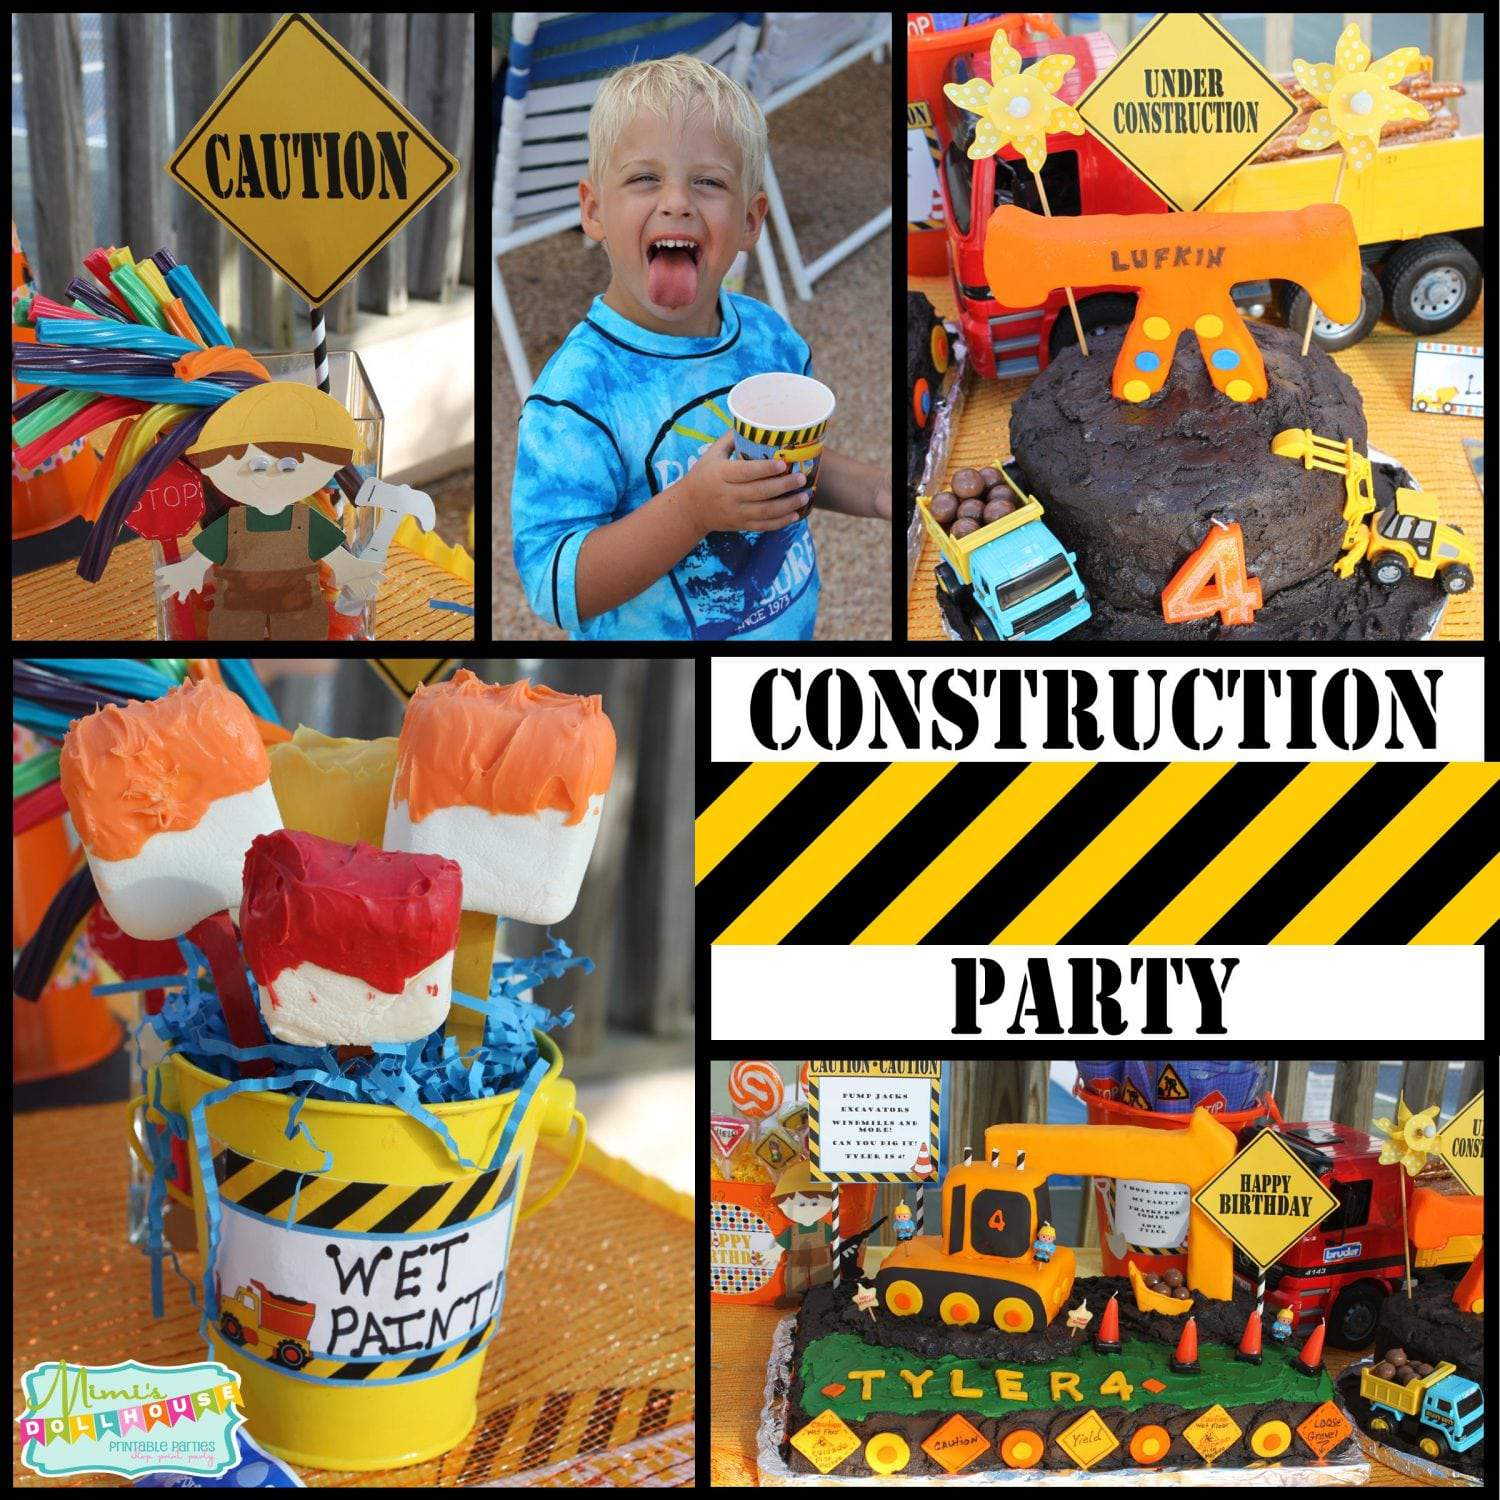 Construction Party: Can you dig it? Tyler is 4!